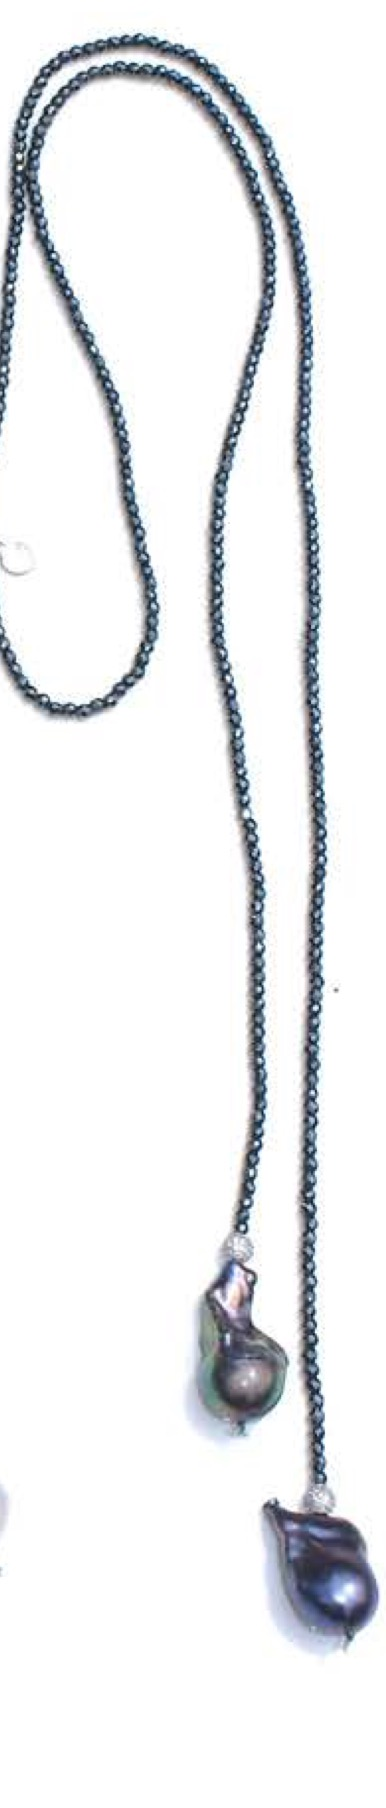 In2 Design Iselia Lariat necklace with freshwater pearls and